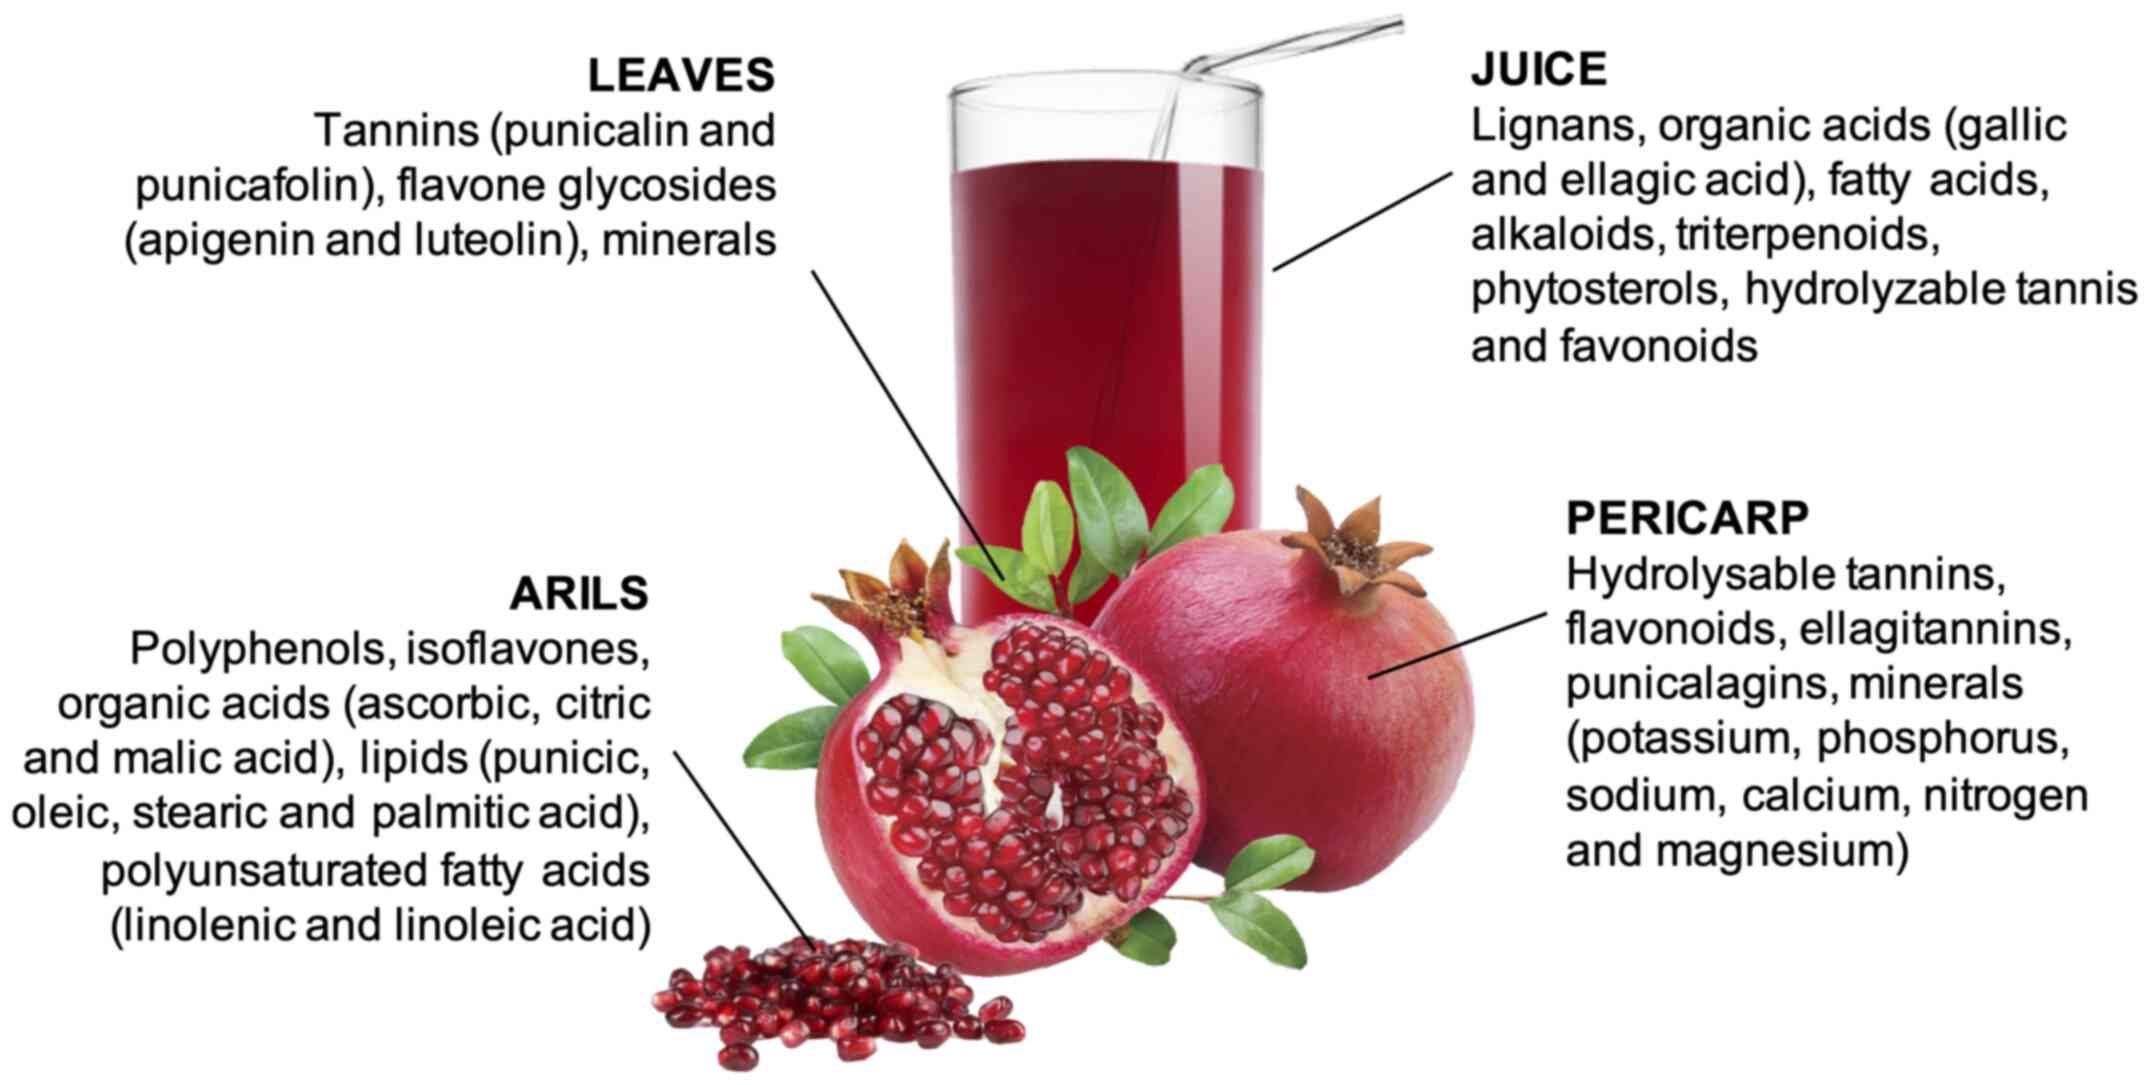 does pomegranate juice cause prostate cancer